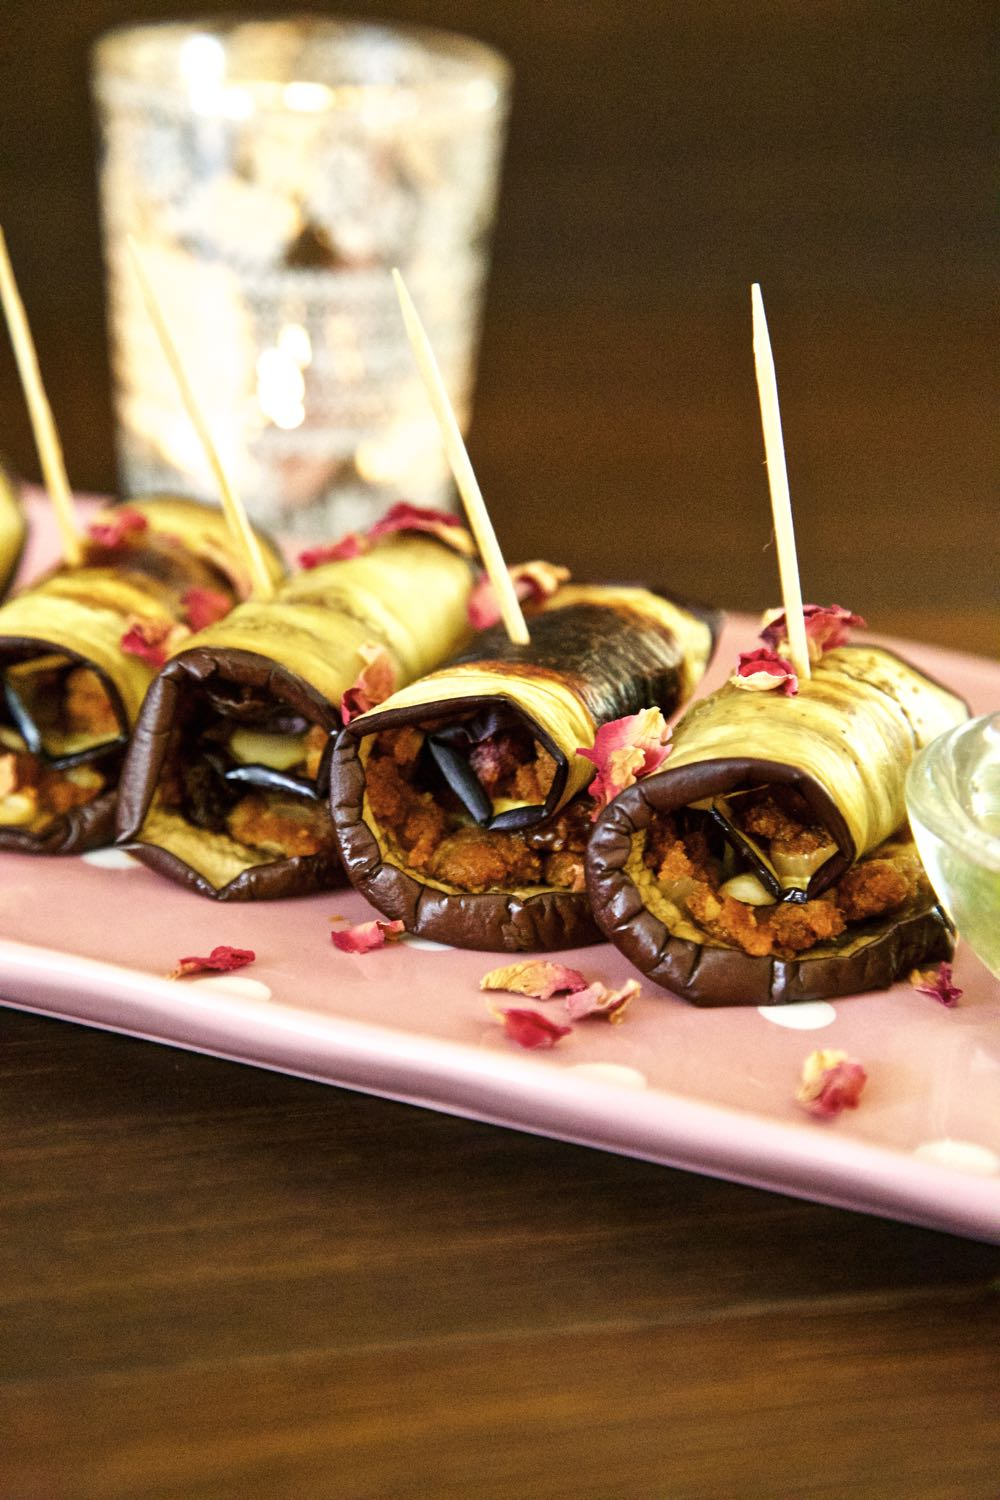 Aubergine Involtini - simple vegan canapés filled with spiced nuts and fruit served with a fresh mint dip.